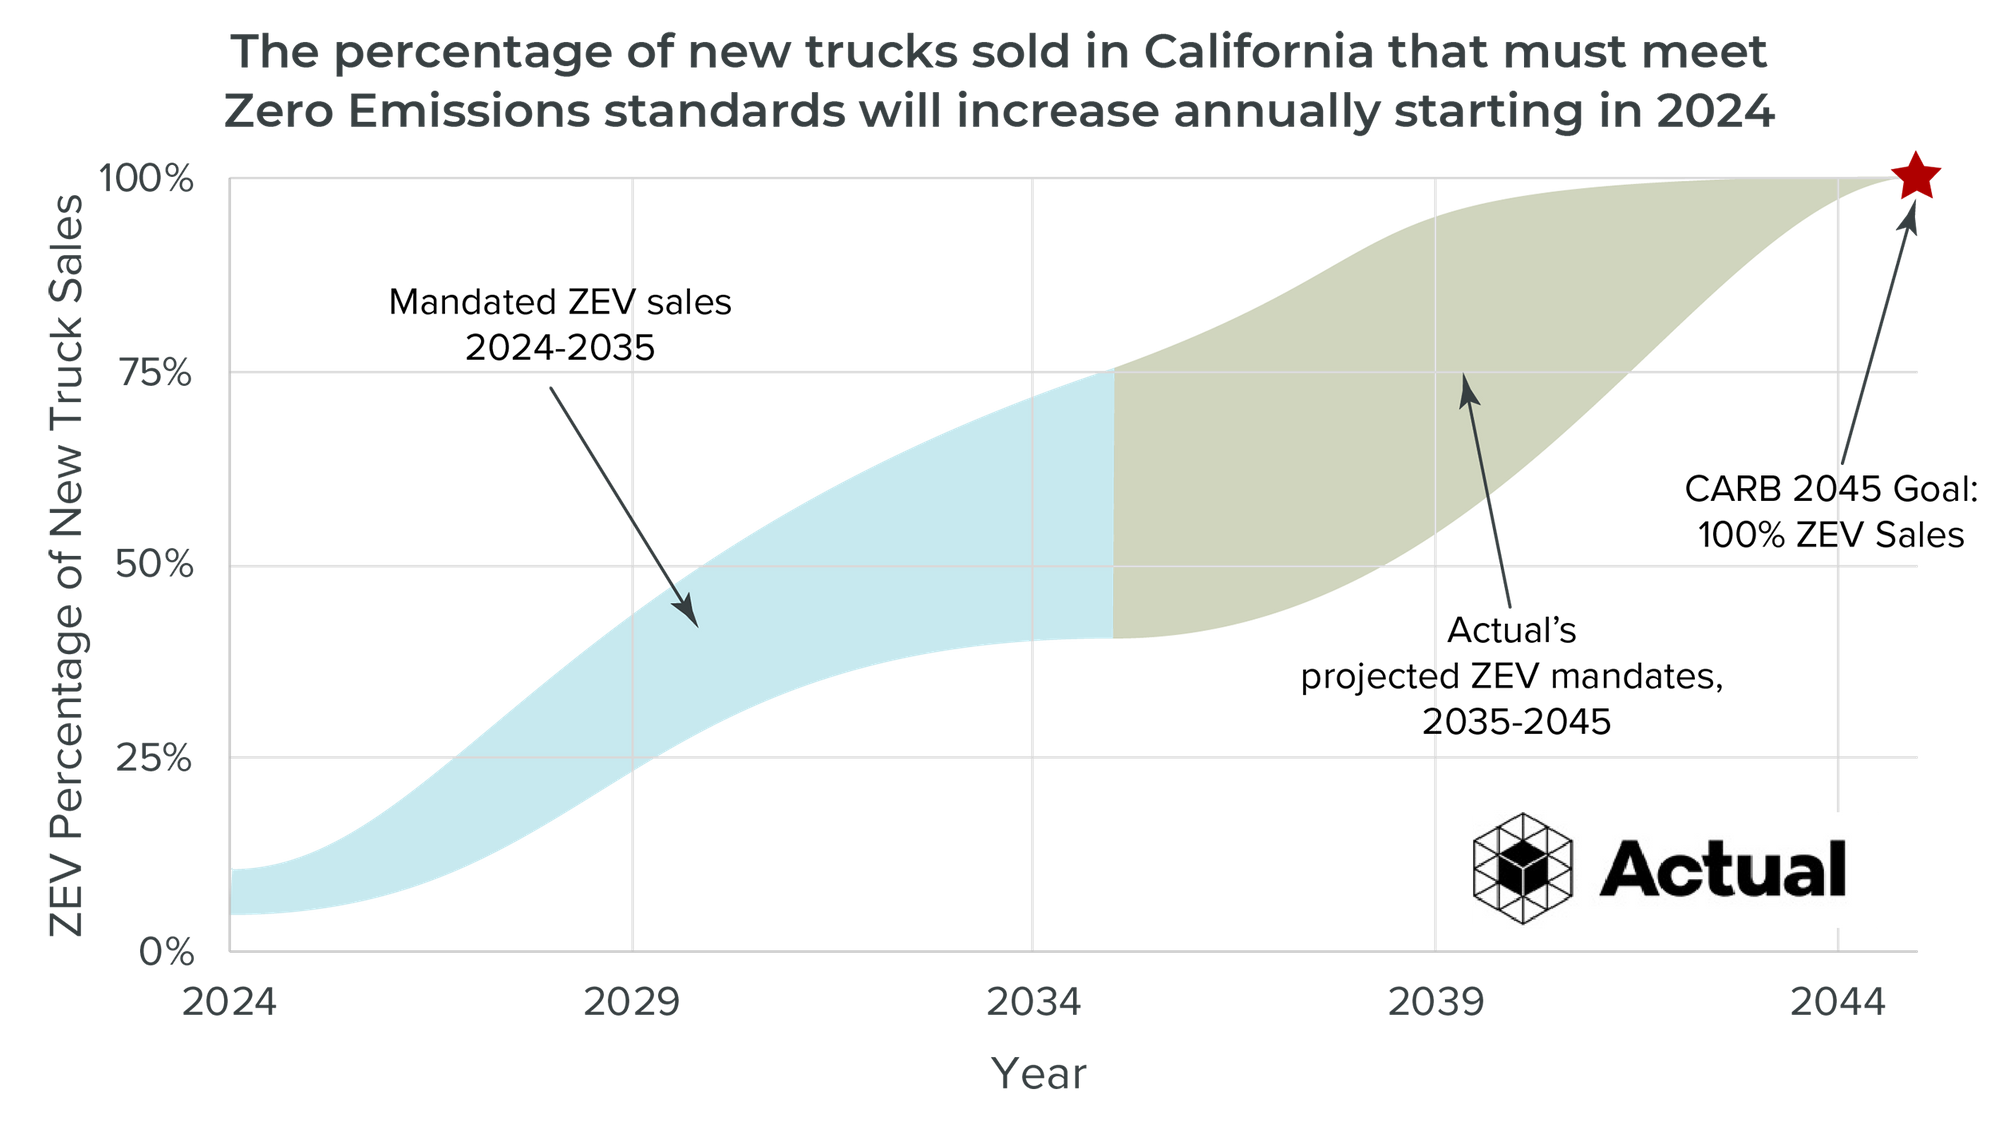 100% of trucks sold in California must meet Zero Emissions standard by 2044